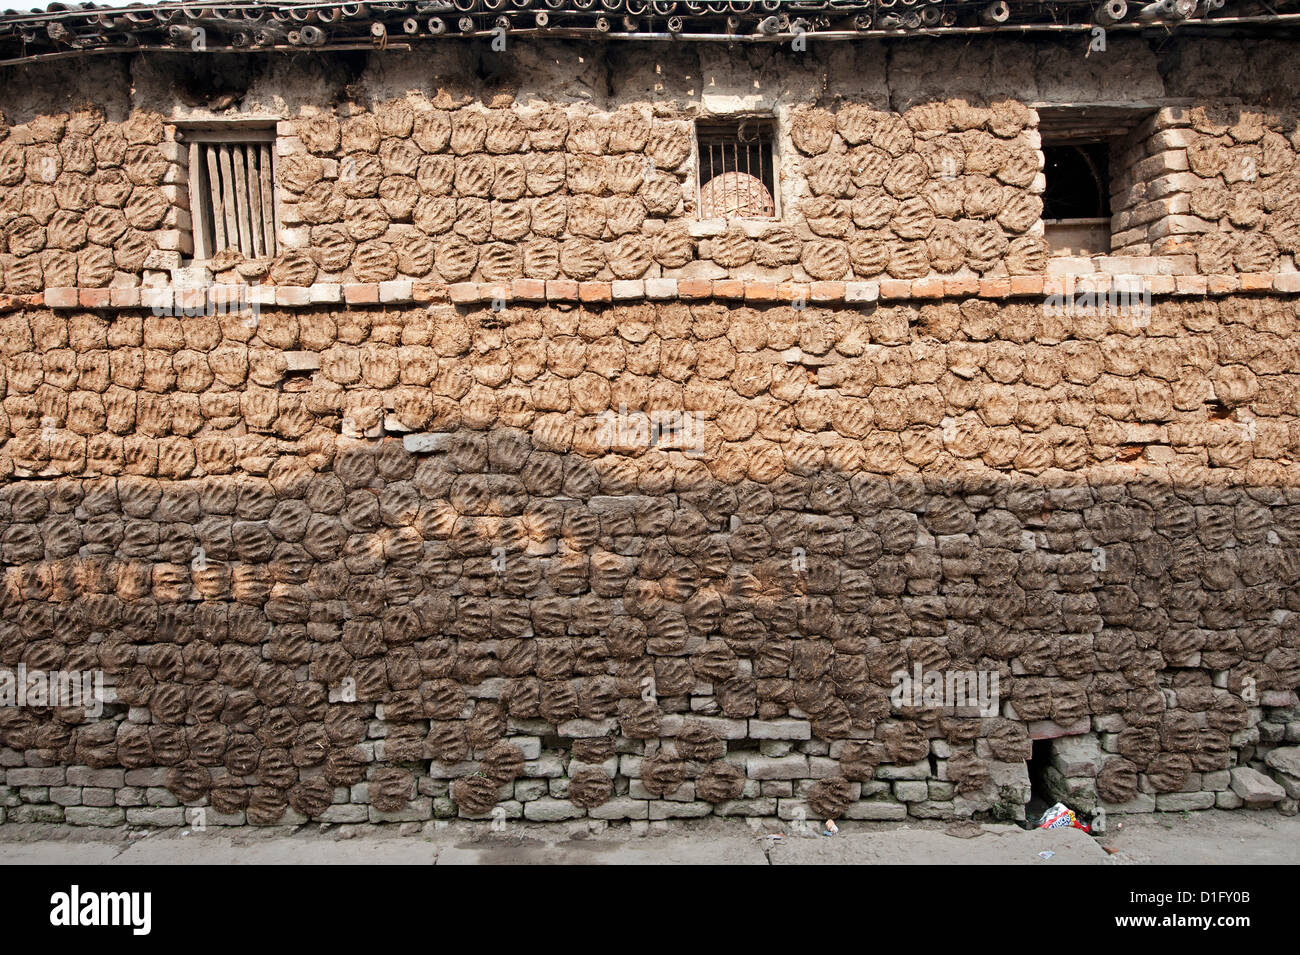 Village house with walls covered completely with hand shaped dung pats left there to dry in the sun, Sonepur, Bihar, - Stock Image